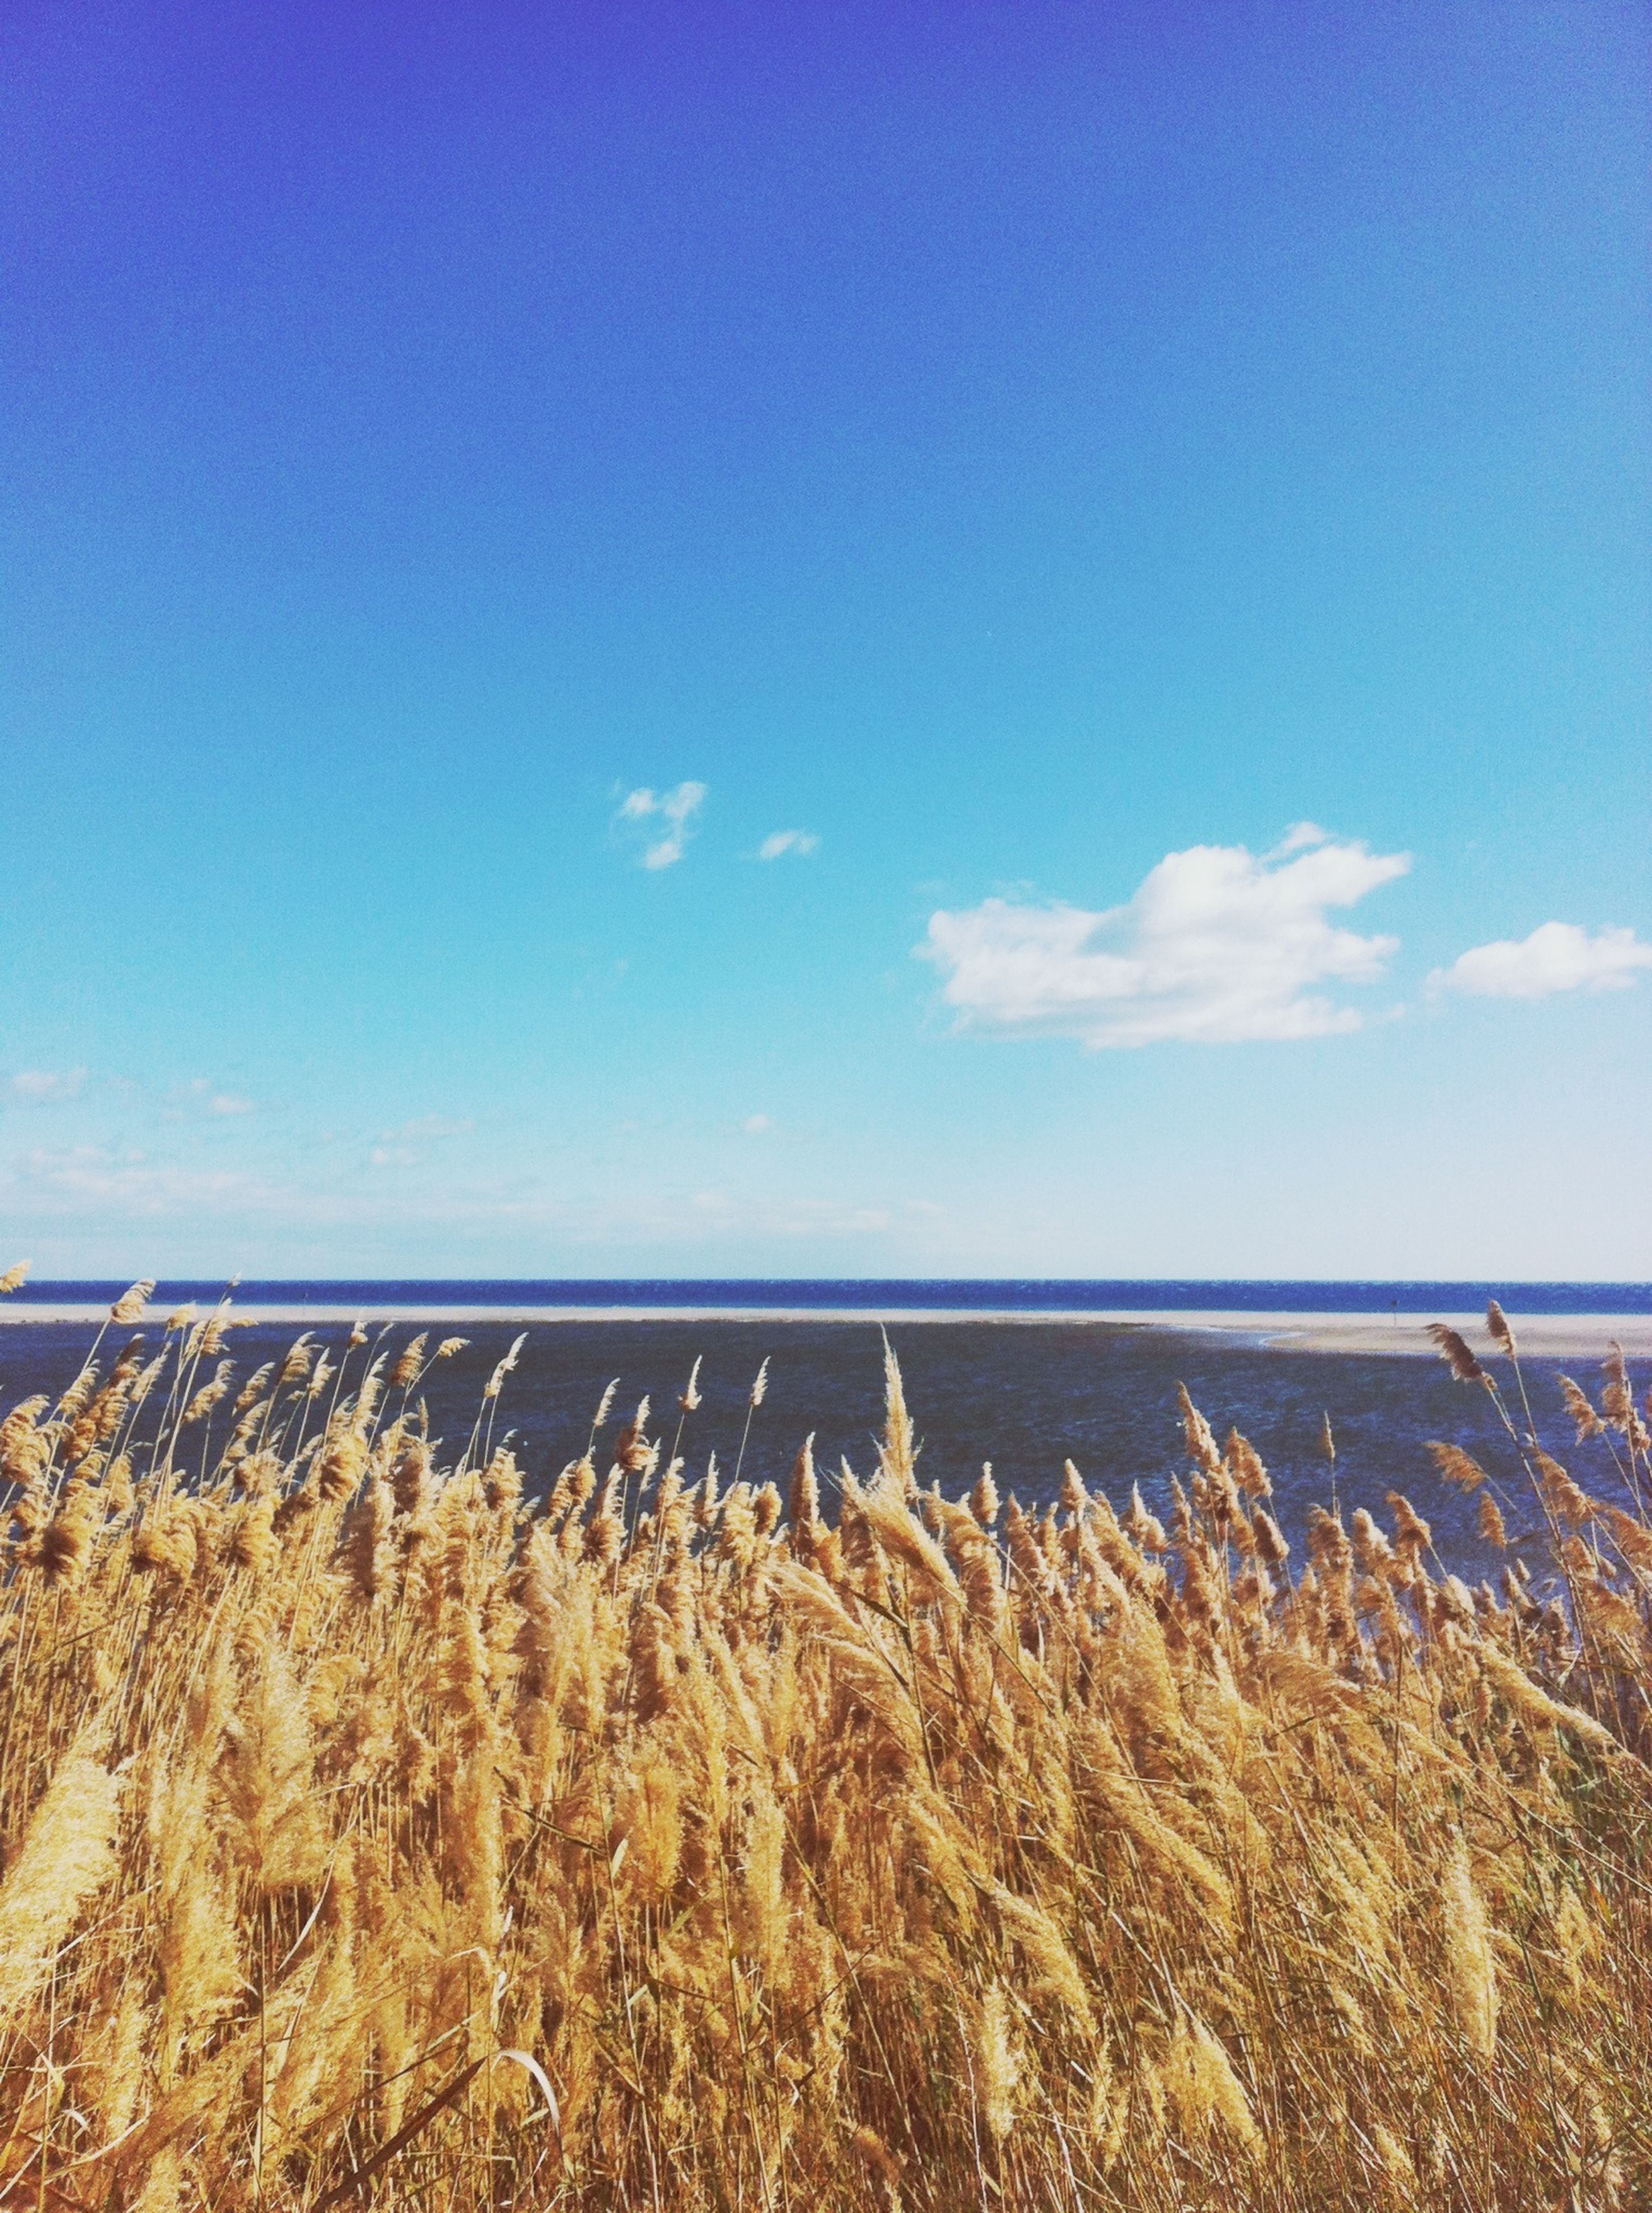 sea, horizon over water, tranquil scene, sky, tranquility, beach, scenics, water, blue, beauty in nature, nature, sand, shore, plant, idyllic, cloud, growth, day, calm, outdoors